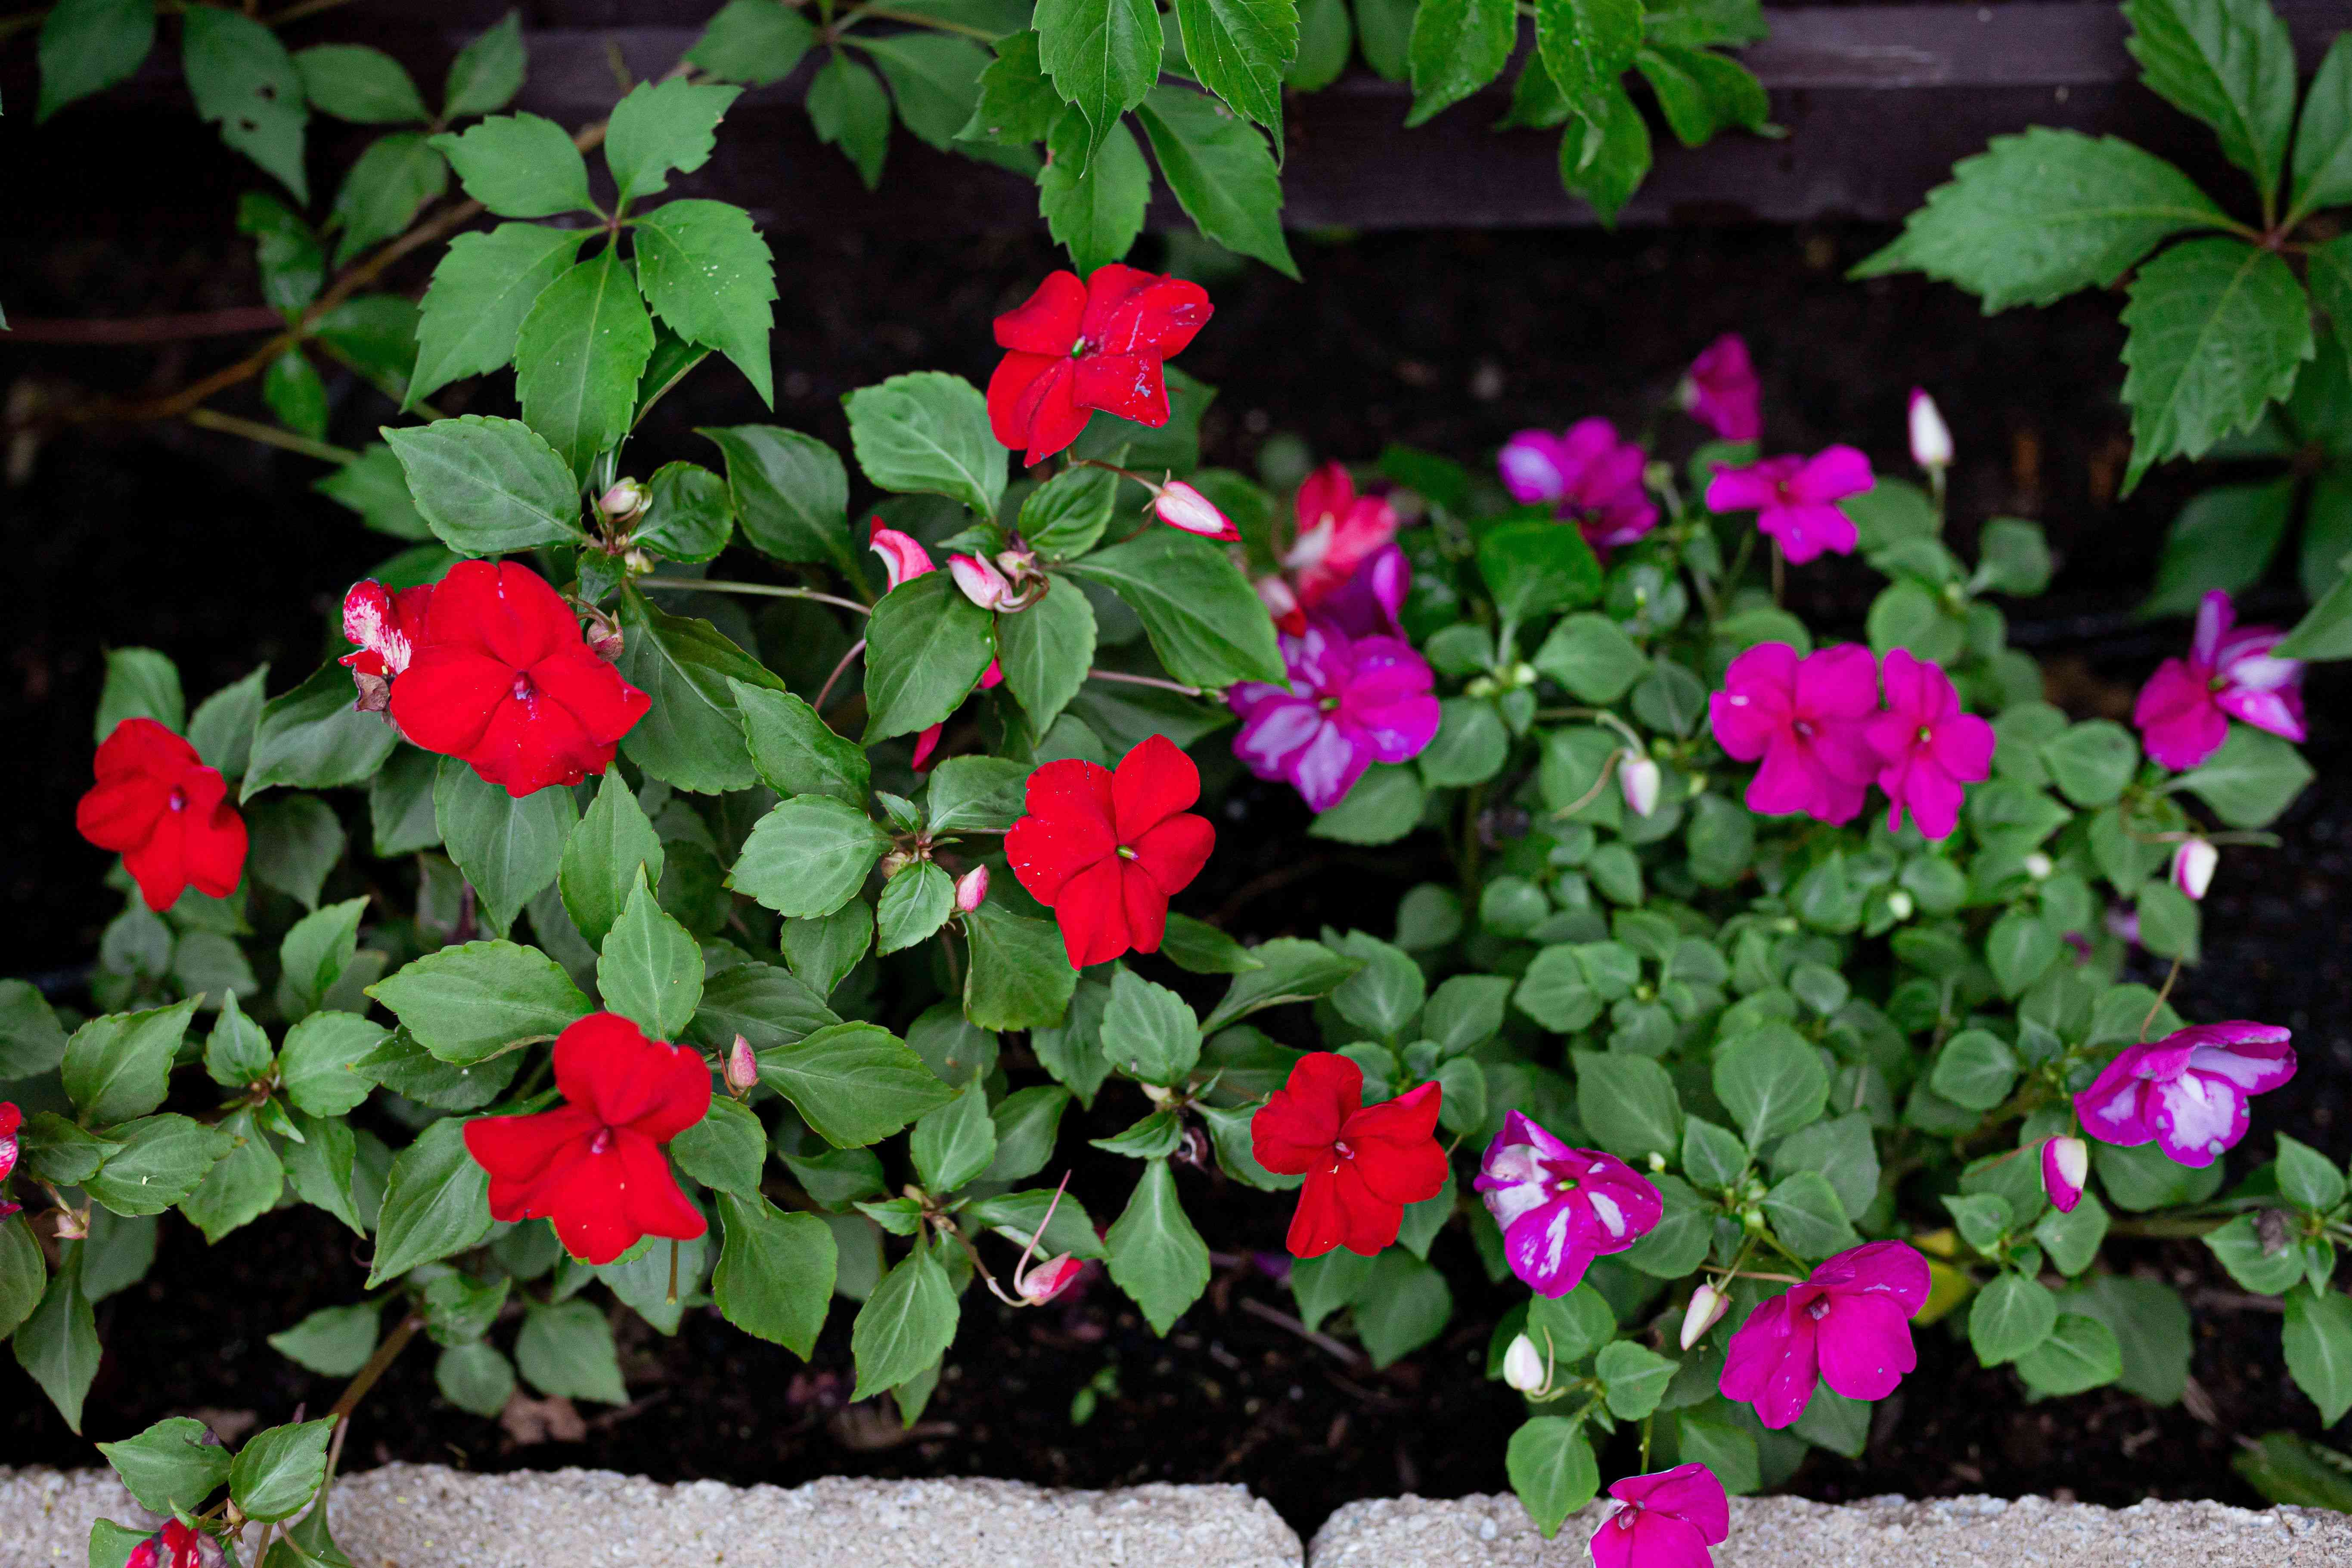 Impatiens plant with bright red and dark pink and white flowers in garden bed